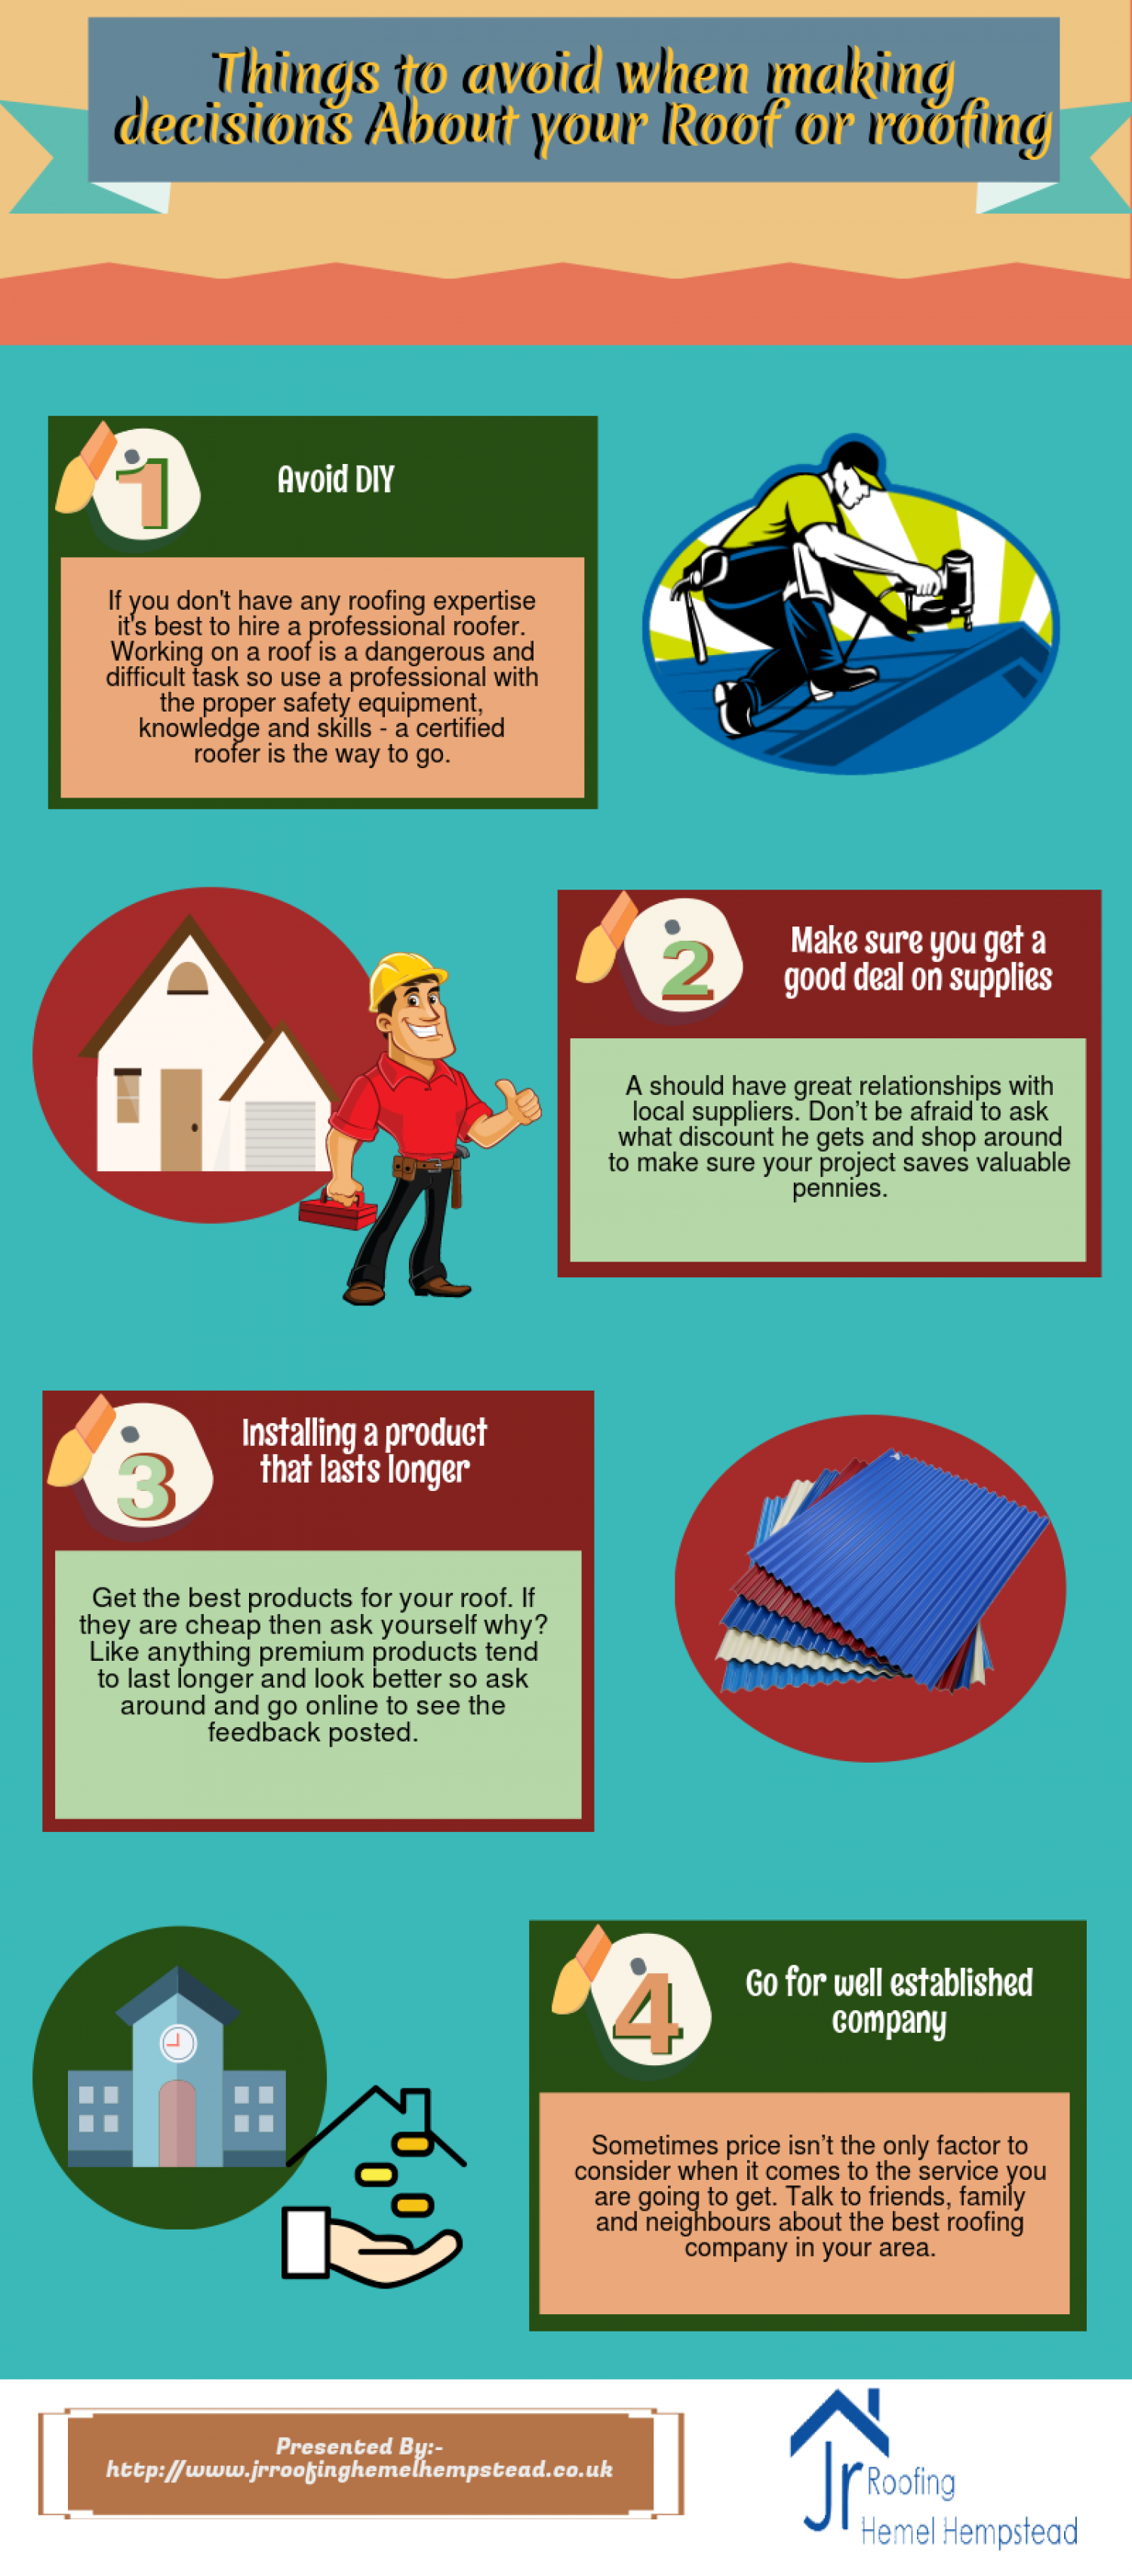 Things to avoid when making decisions About your Roof or roofing Infographic